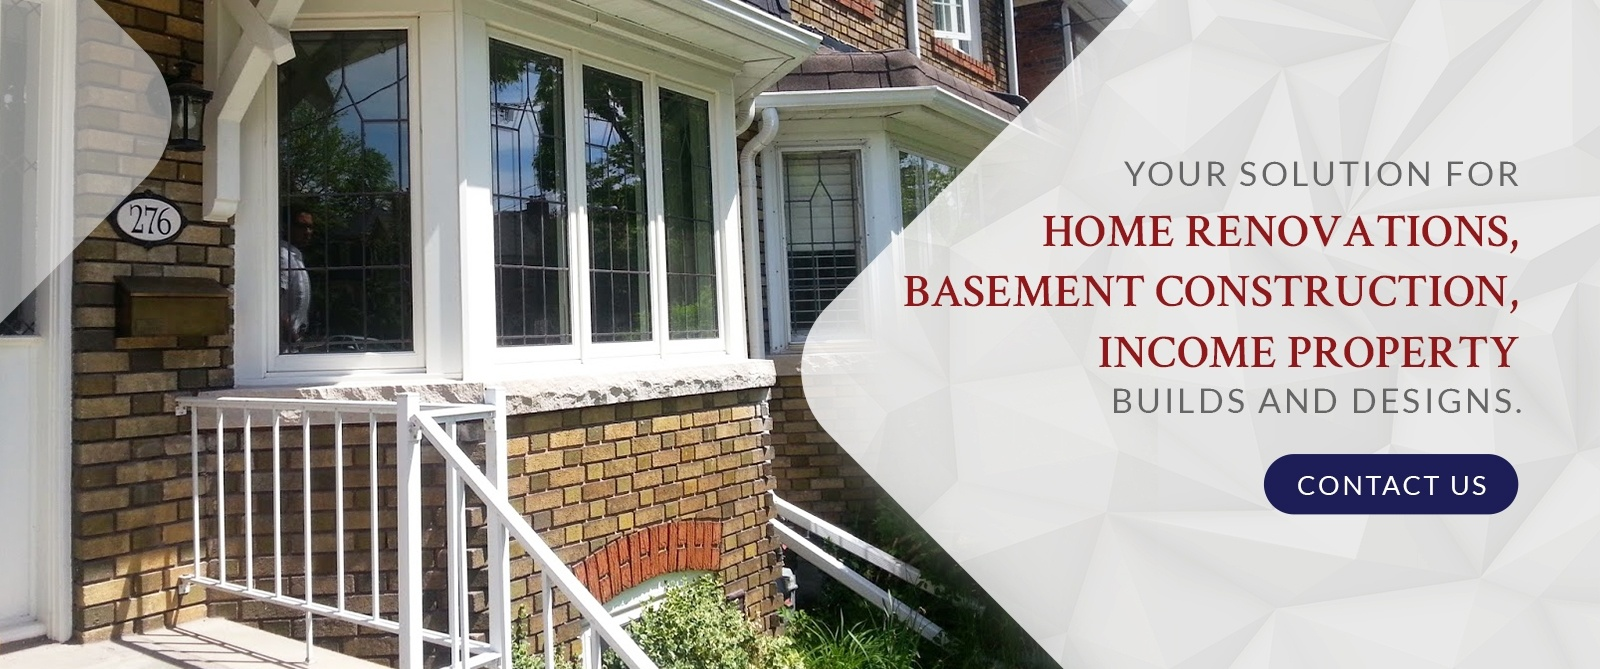 Professional design and renovation services by Finished Basements in Toronto